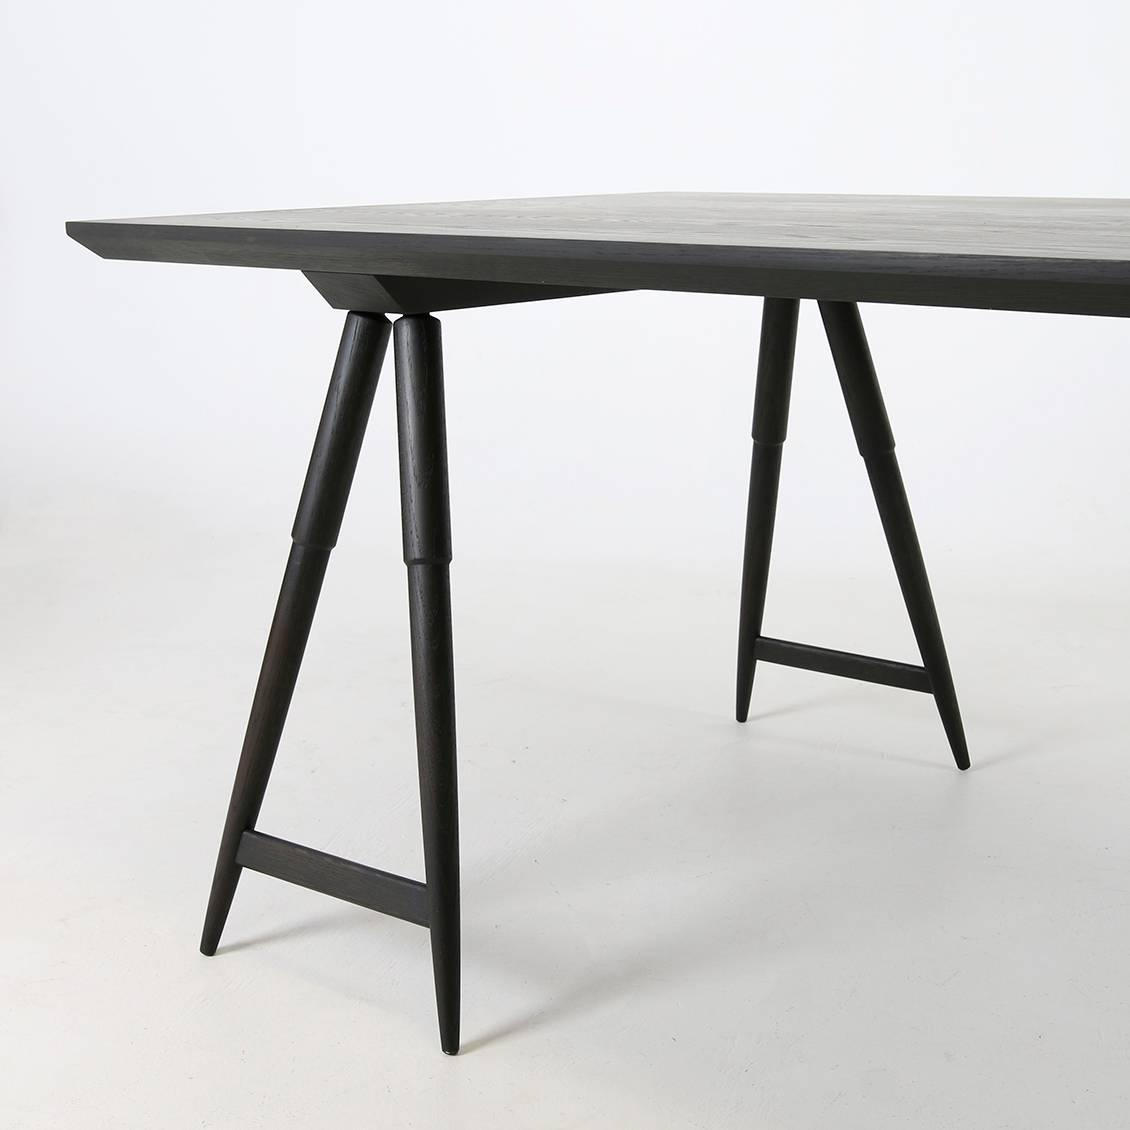 Rockport Sawhorse Table White Oak With Seasoned Black Finish By Studio Dunn For At 1stdibs